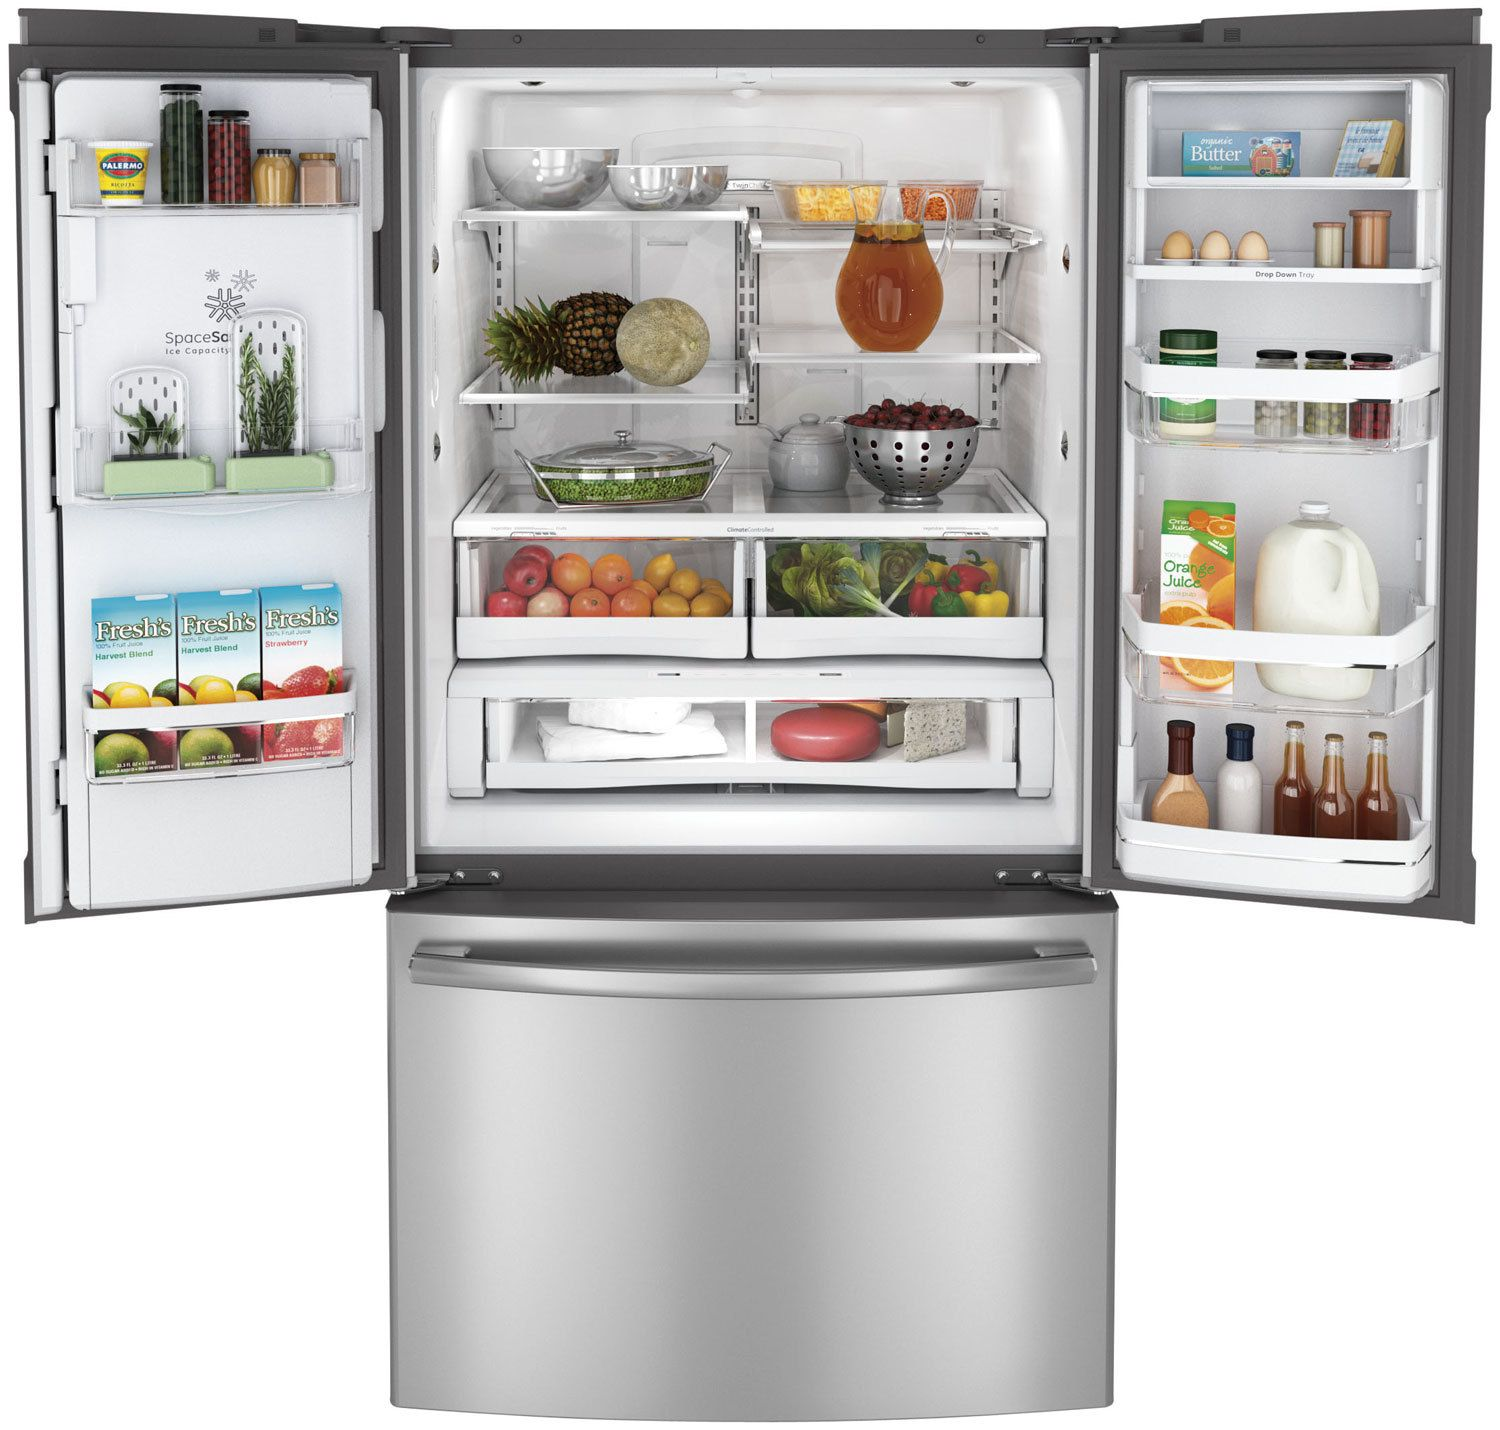 Google Image Result For Http Imagethumbnails Milo Com 029 674 589 Trimmed 2967 With Images Stainless Steel French Door Refrigerator French Door Refrigerator French Doors